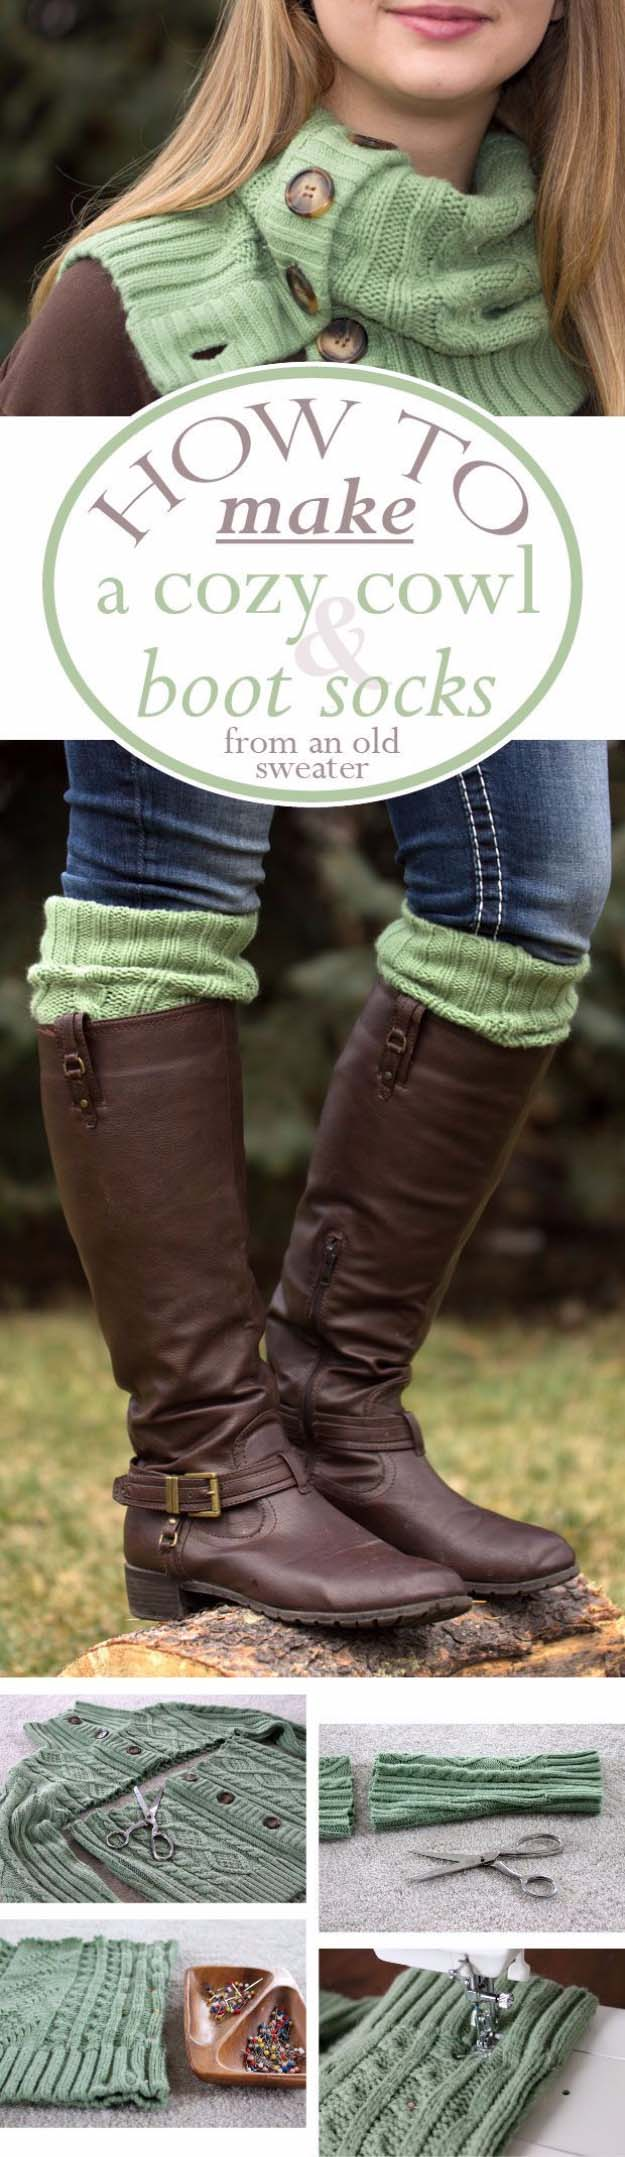 DIY Gifts for Your Girlfriend and Cool Homemade Gift Ideas for Her | Easy Creative DIY Projects and Tutorials for Christmas, Birthday and Anniversary Gifts for Mom, Sister, Aunt, Teacher or Friends | Matching Homemade Cowl and DIY Boot Socks - Fun Fashion for Her #diygifts #diyideas